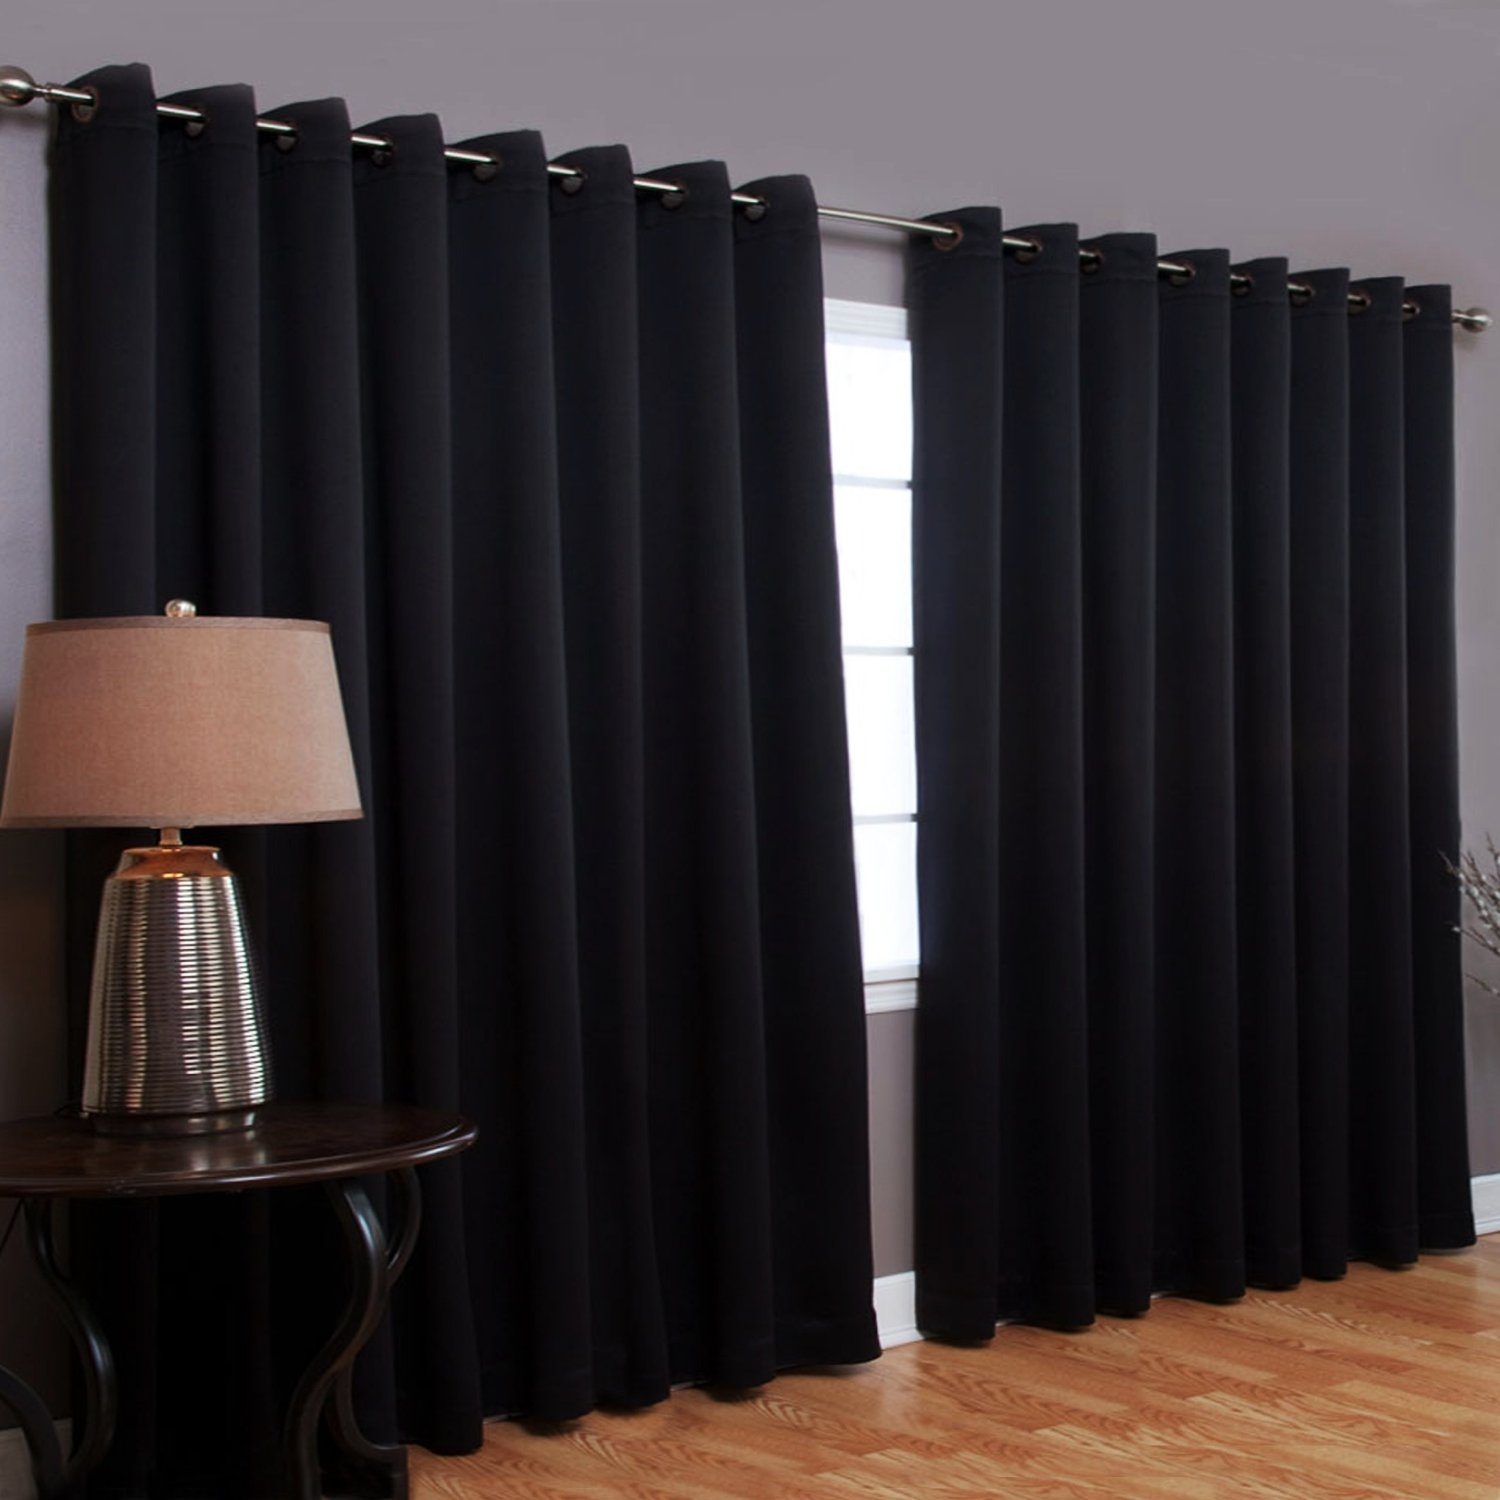 Thick Curtains For Bedroom Curtain Idea Also Short Drop Blackout Pertaining To Thick Bedroom Curtains (Image 13 of 15)